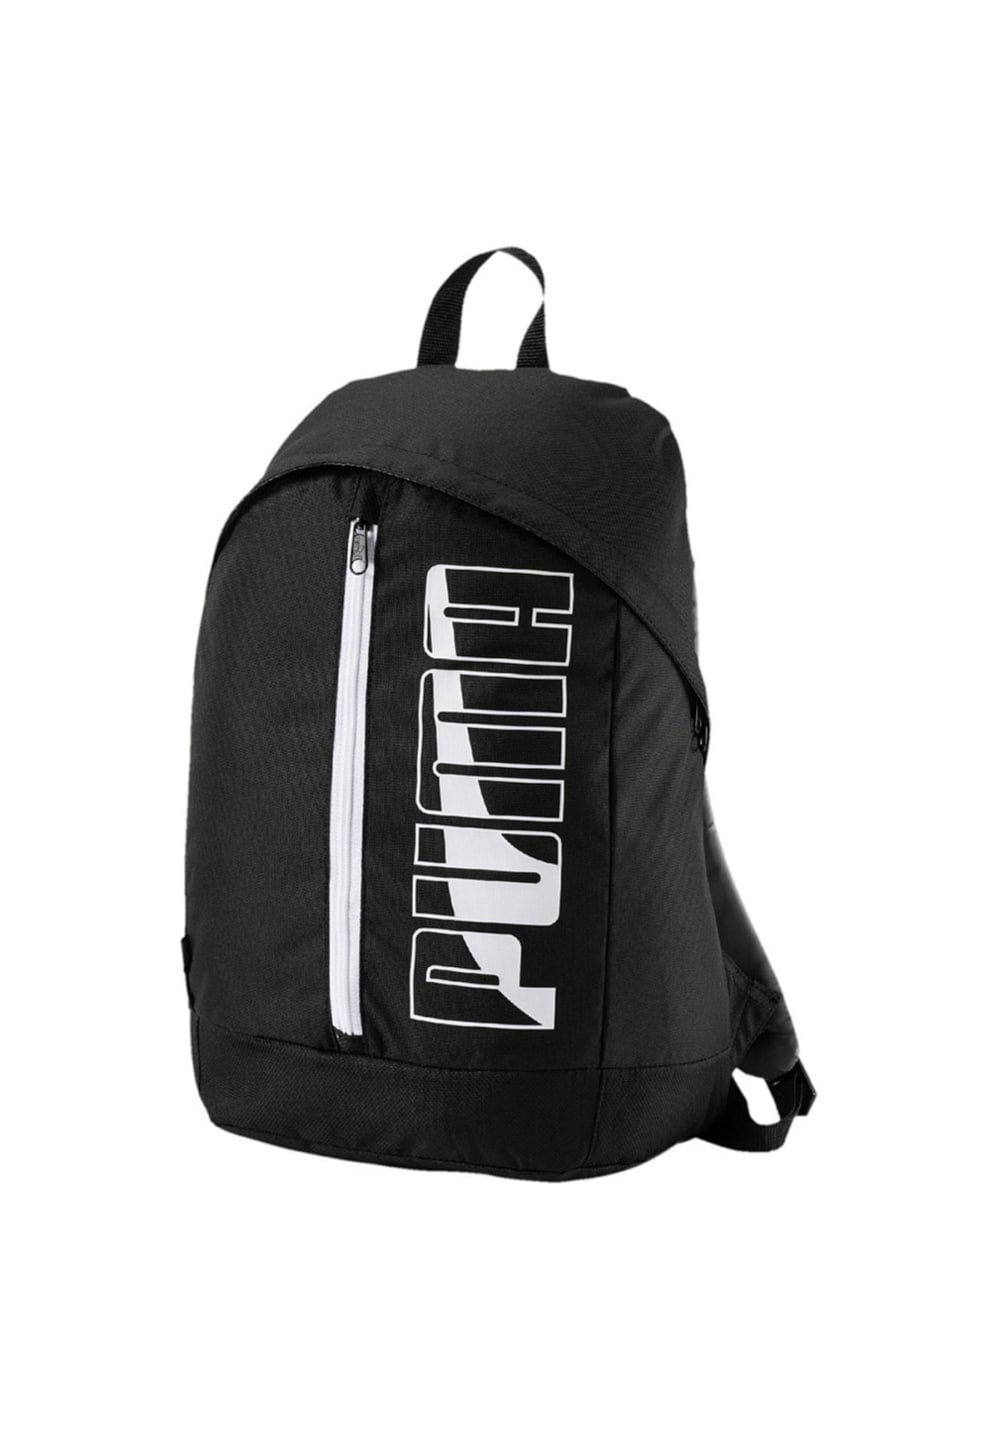 fa11ef4809e ... Puma Pioneer Backpack II - Backpacks - Black. Back to Overview. This  product is currently out of stock.